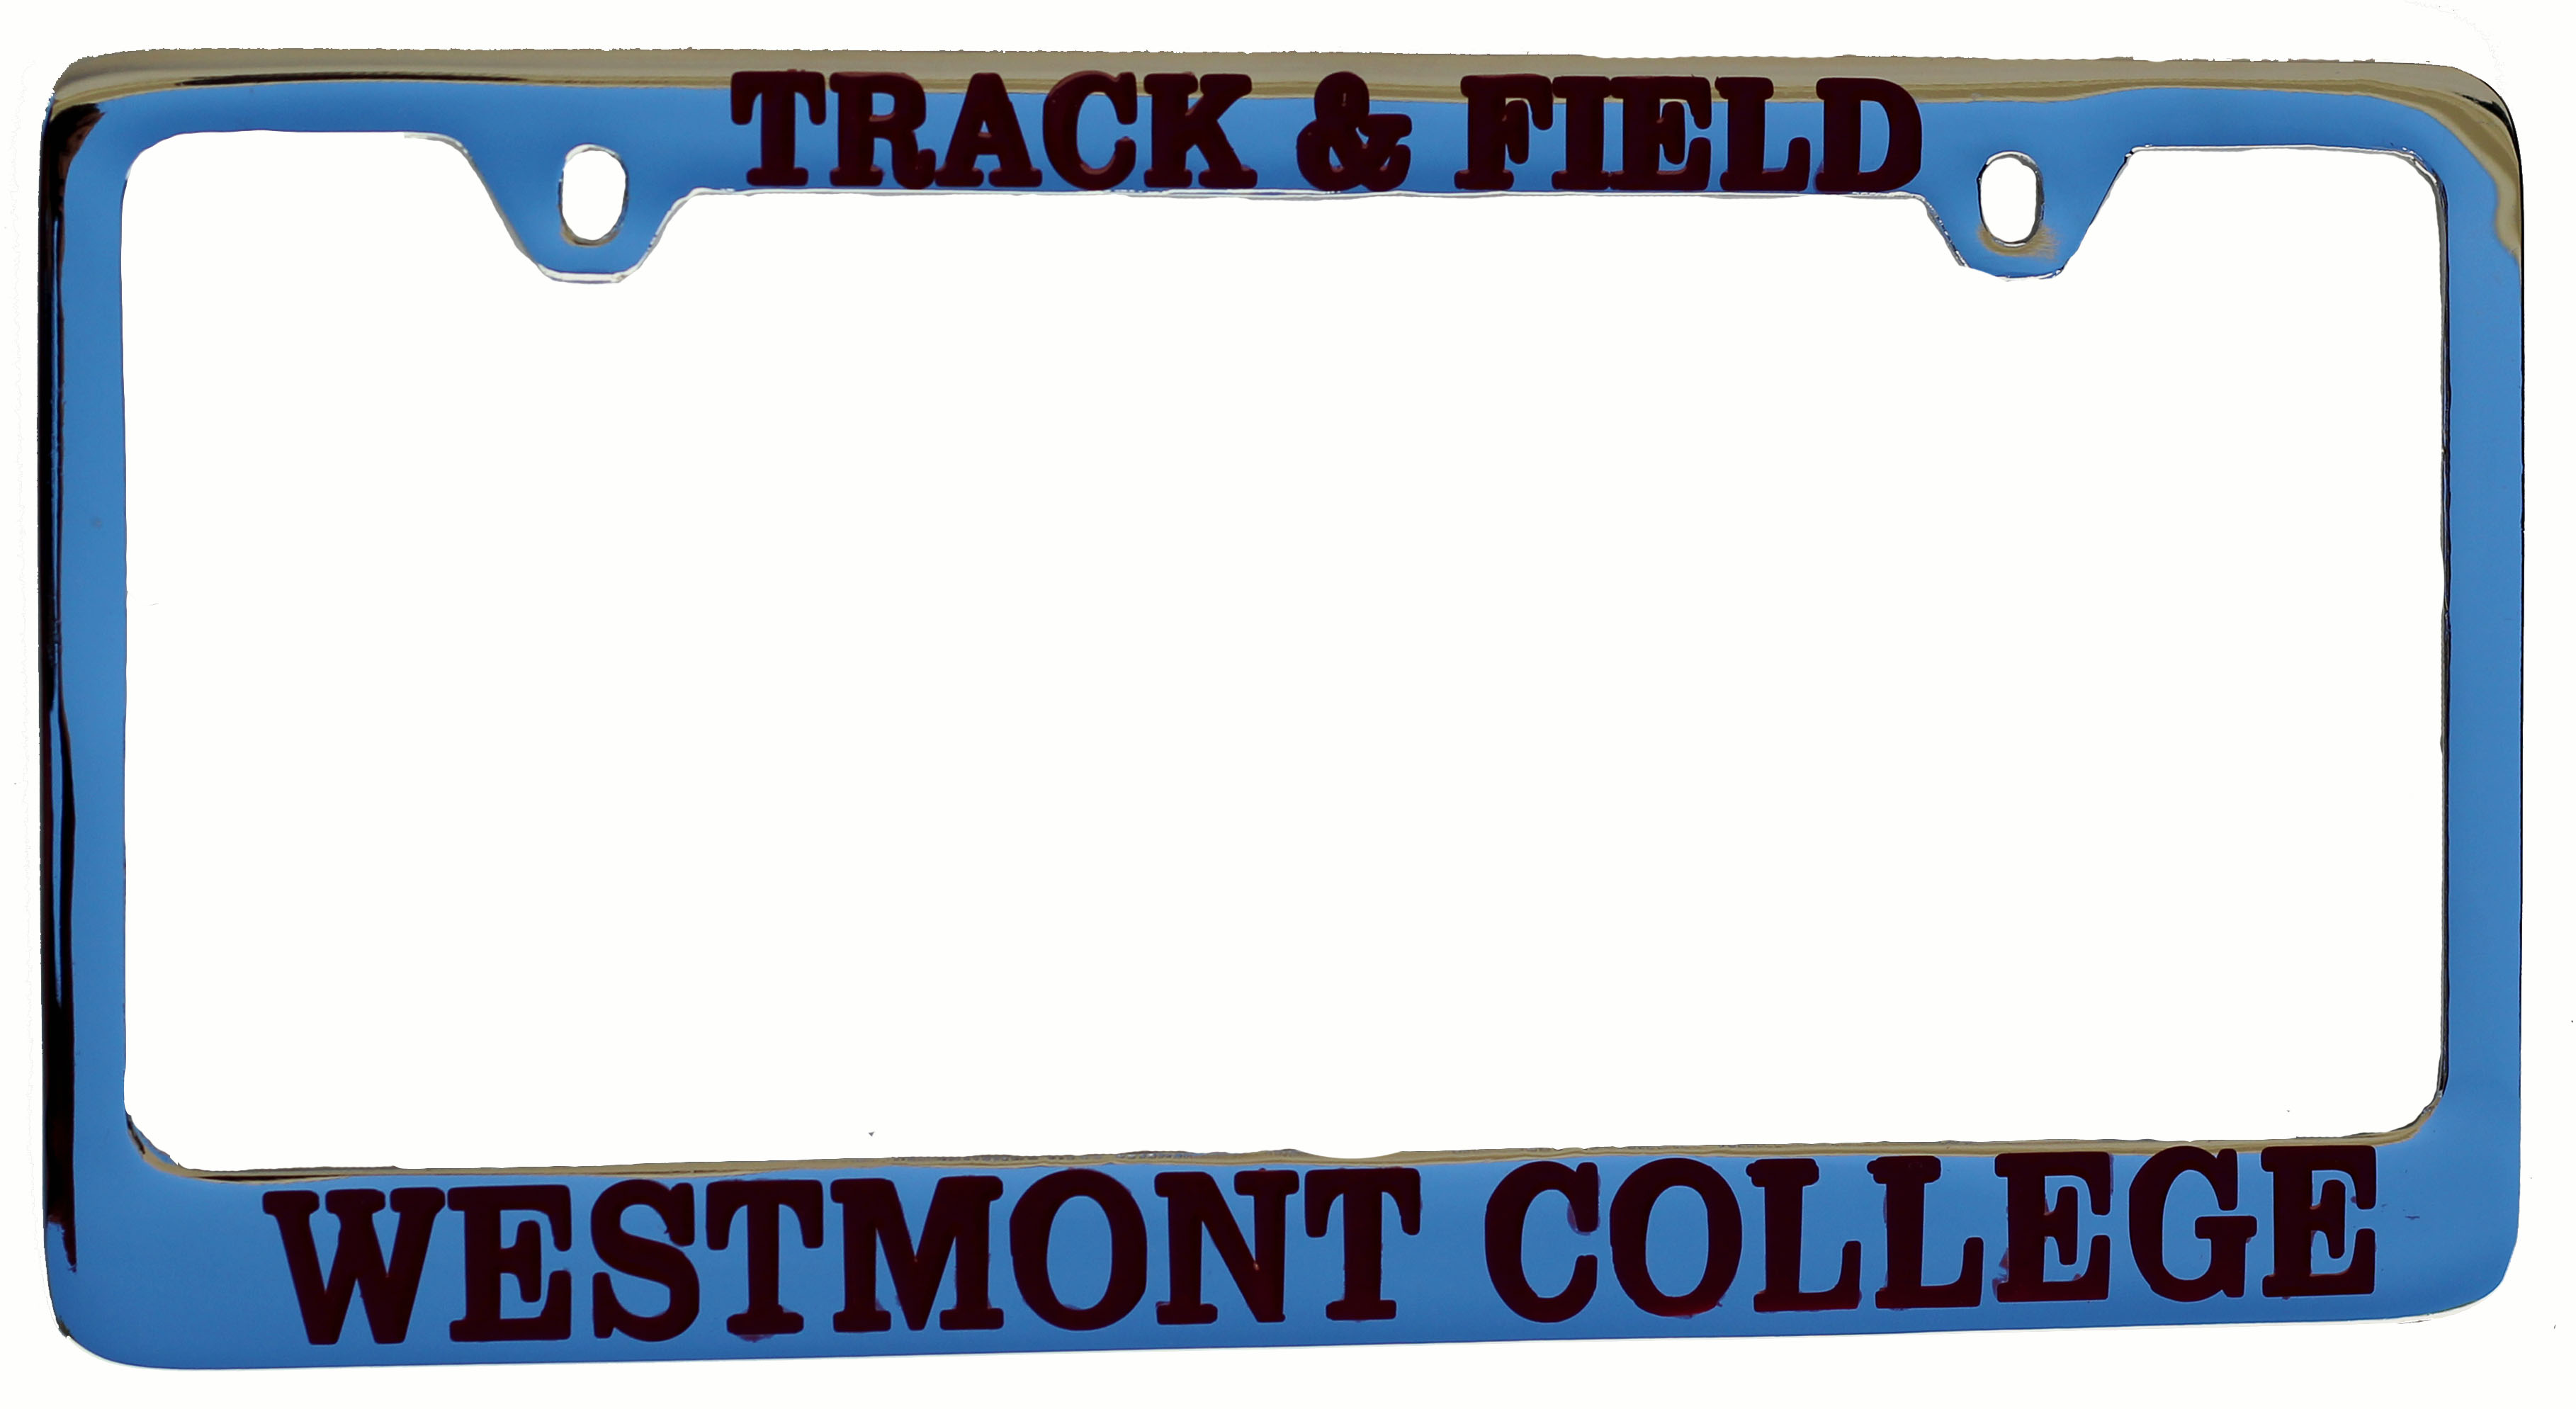 Image for the Track and Field Westmont License Plate Frame product